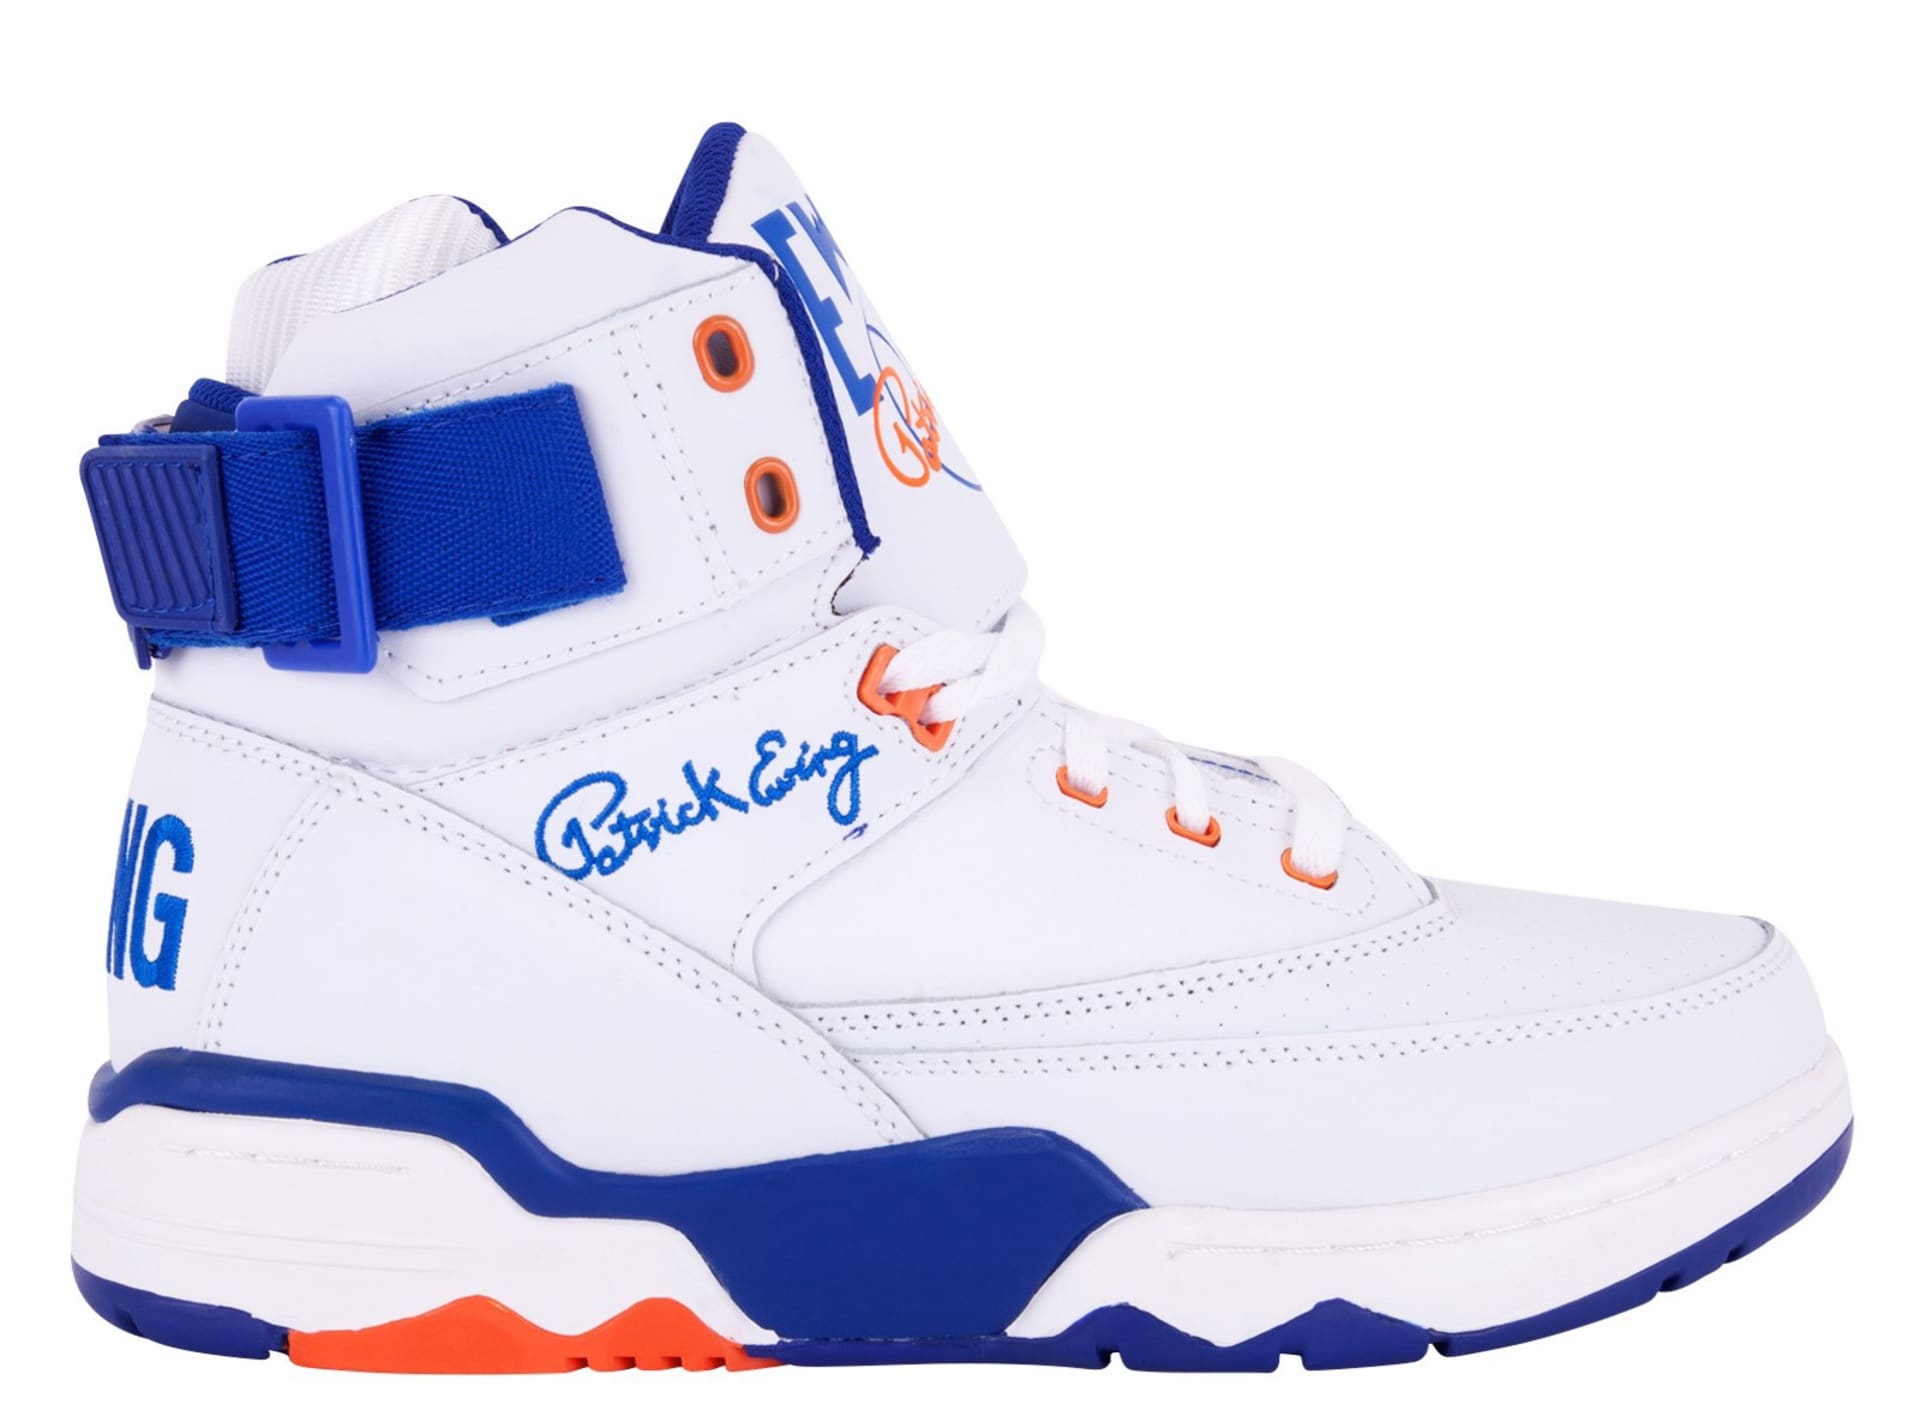 563da4ed3dc1 20 Best Signature Sneaker Lines of All Time